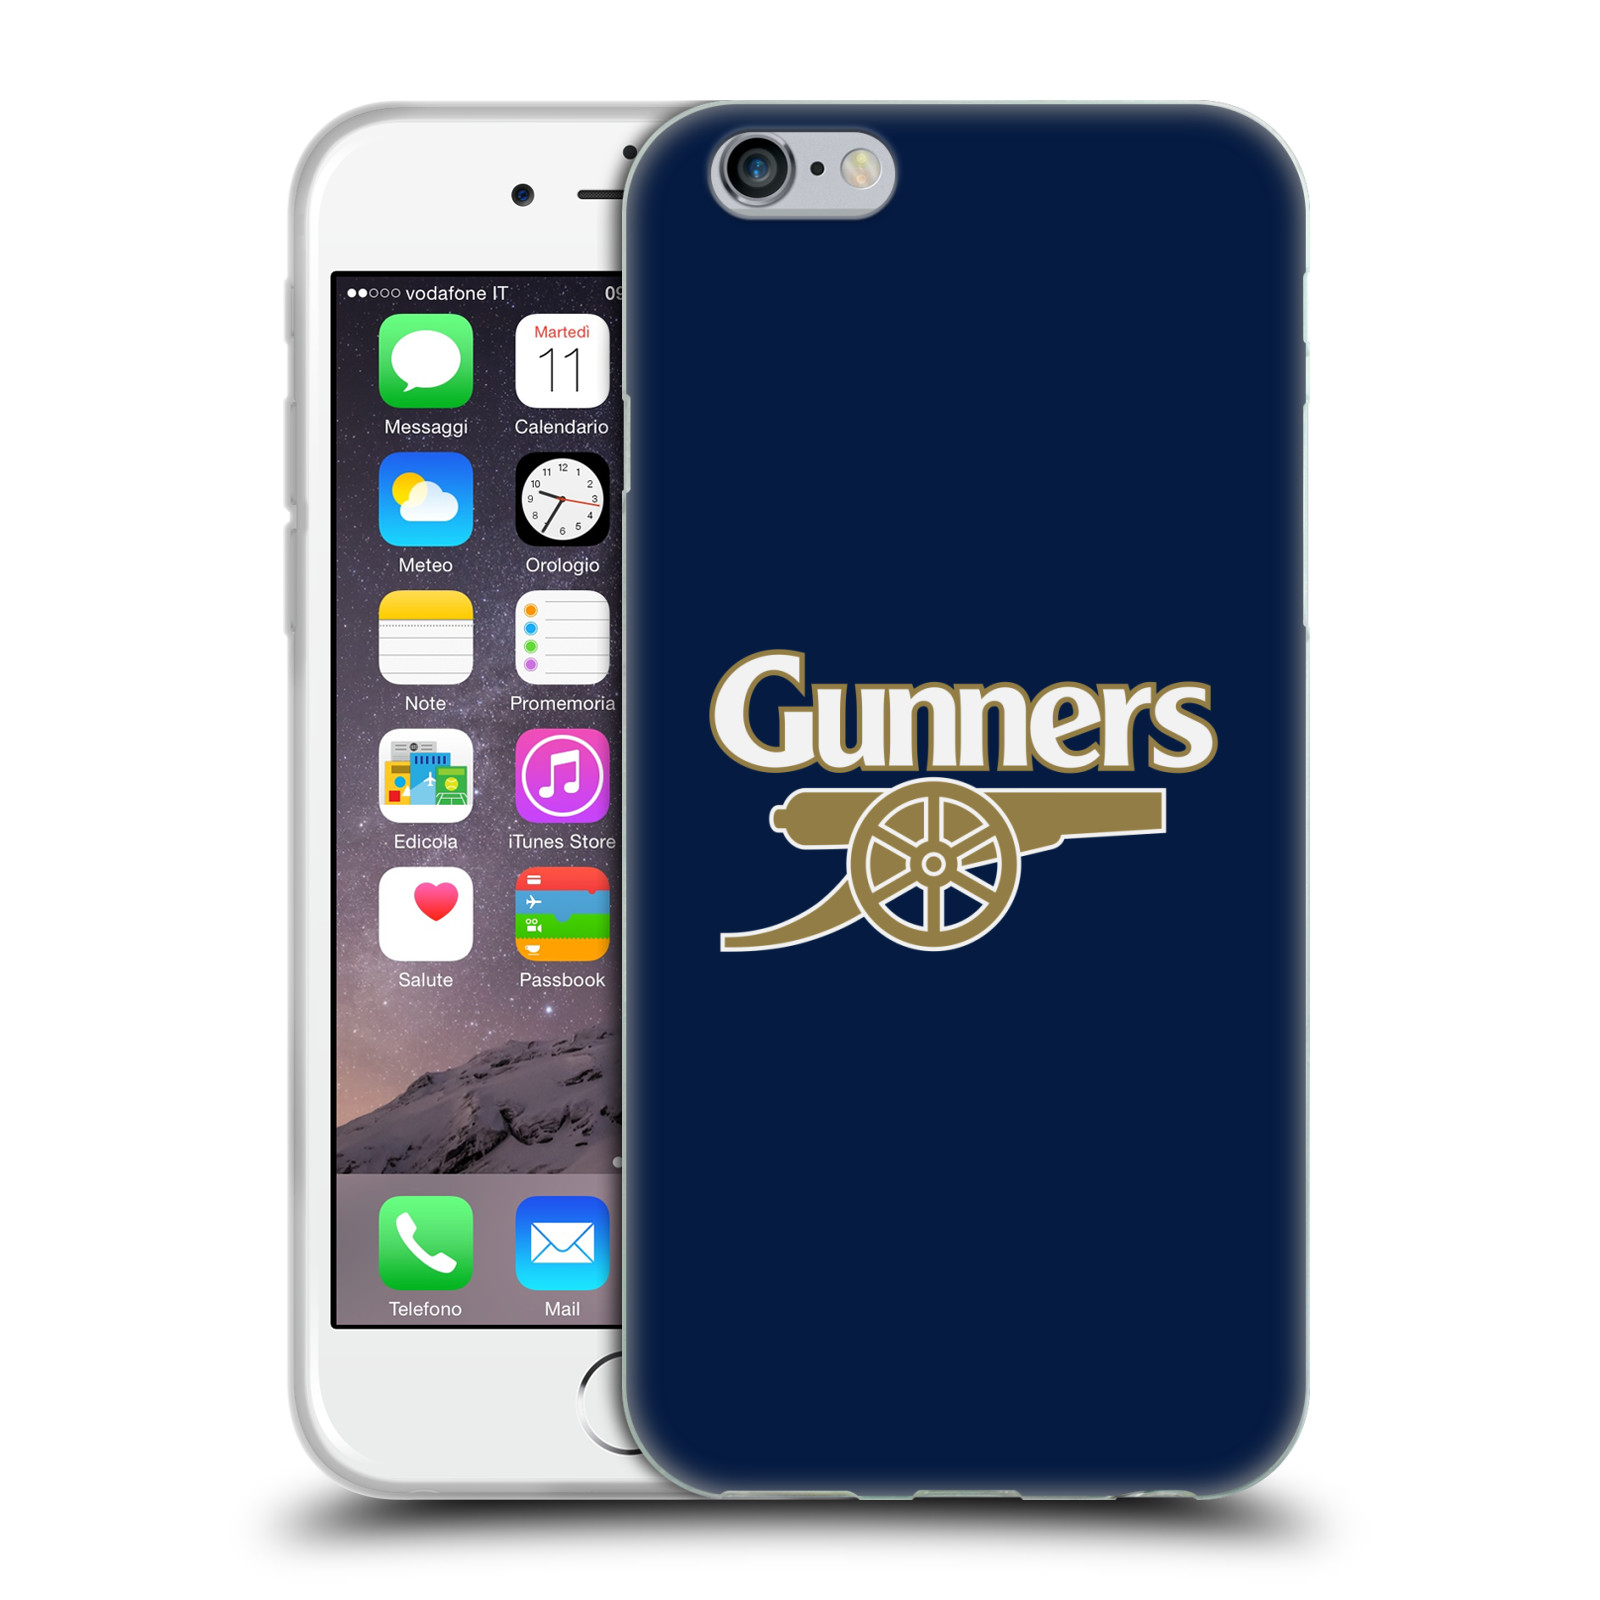 Silikonové pouzdro na mobil Apple iPhone 6 - Head Case - Arsenal FC - Gunners